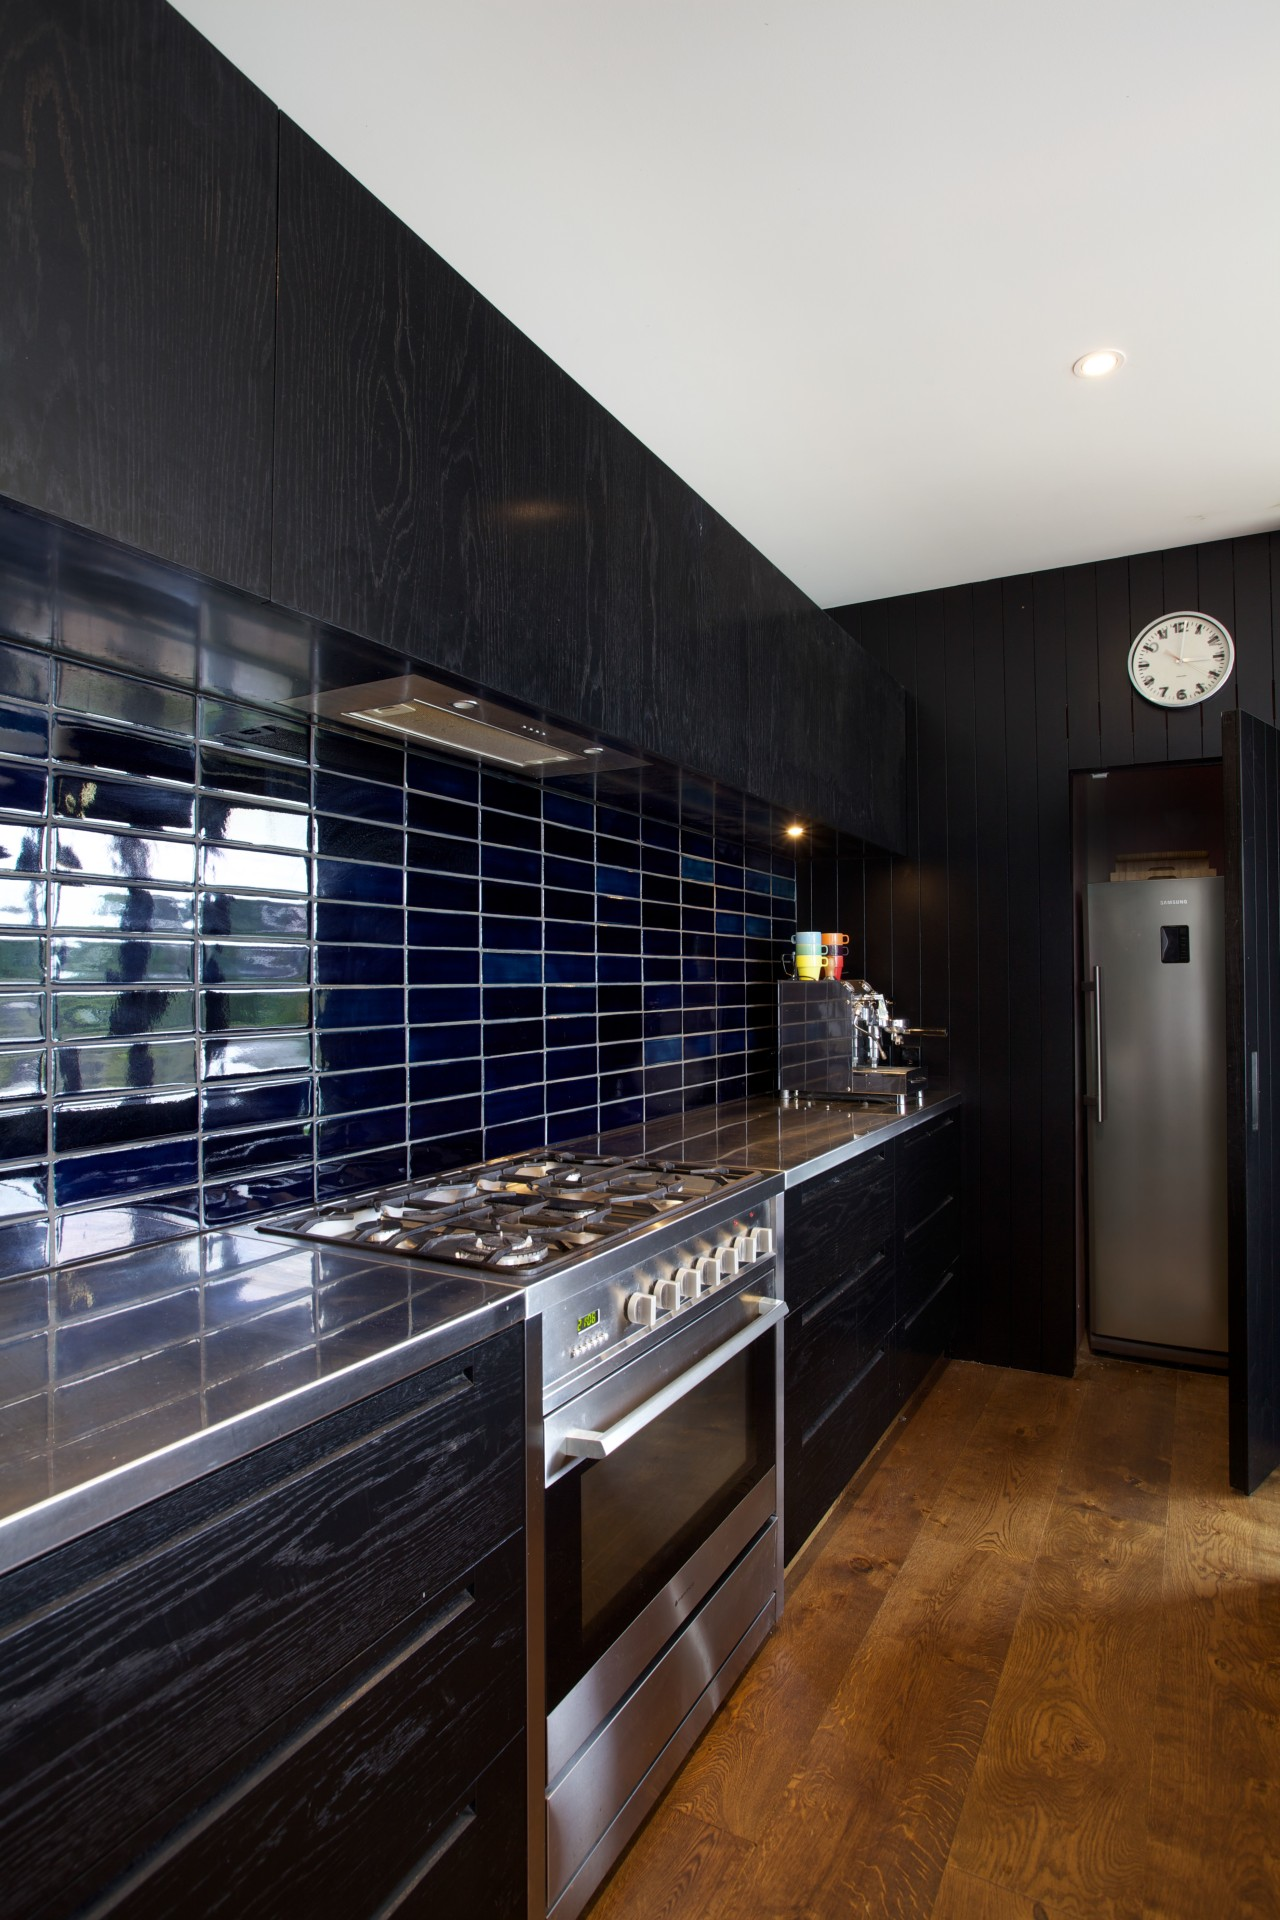 A Vibiemme Domobar coffee machine was plumbed into cabinetry, countertop, interior design, kitchen, room, black